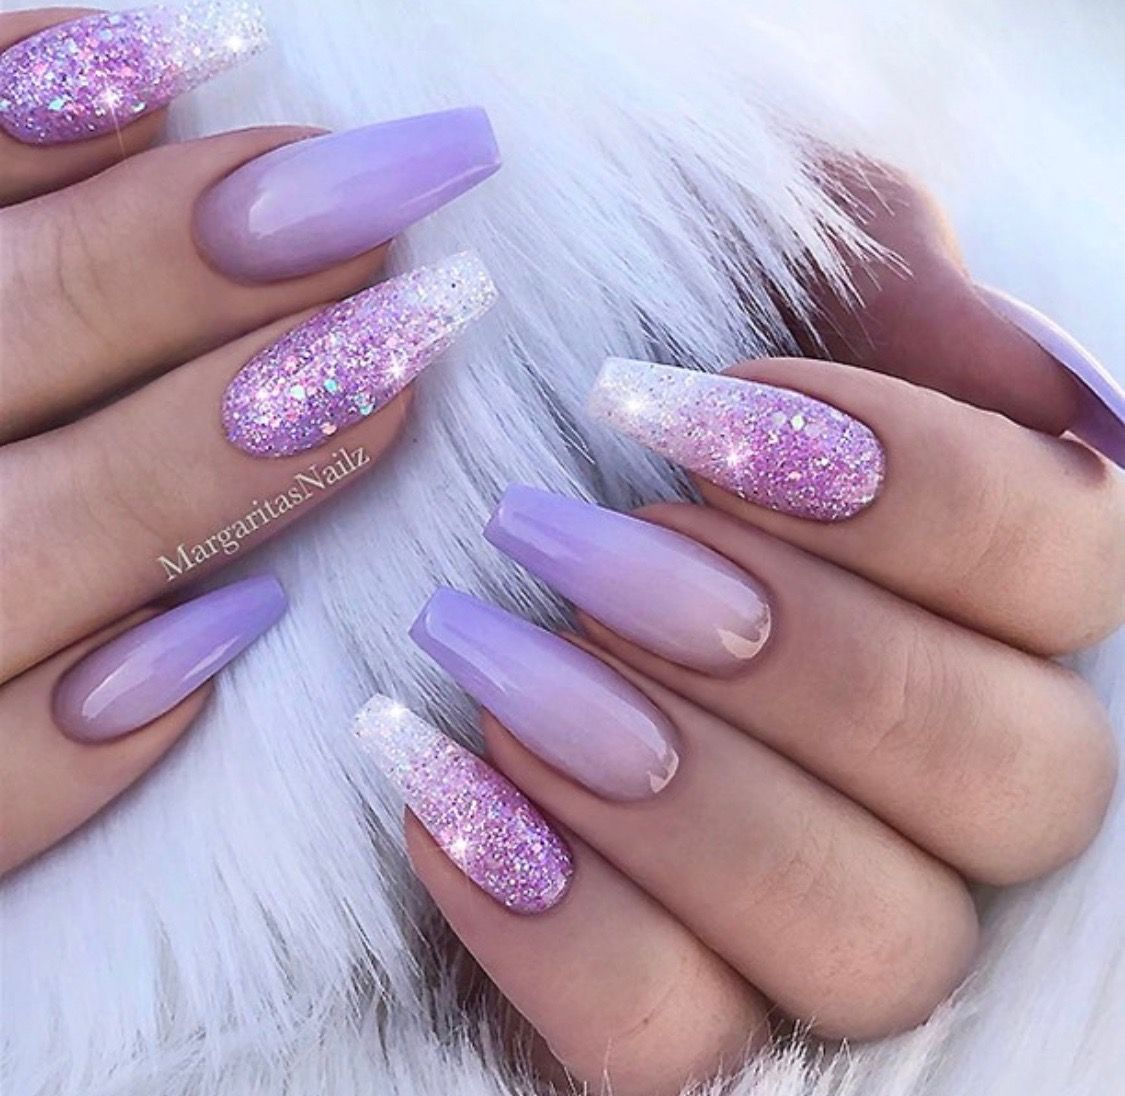 Lilac/ lavender nails - Lilac/ Lavender Nails Nail Nouveau In 2018 Pinterest Nails